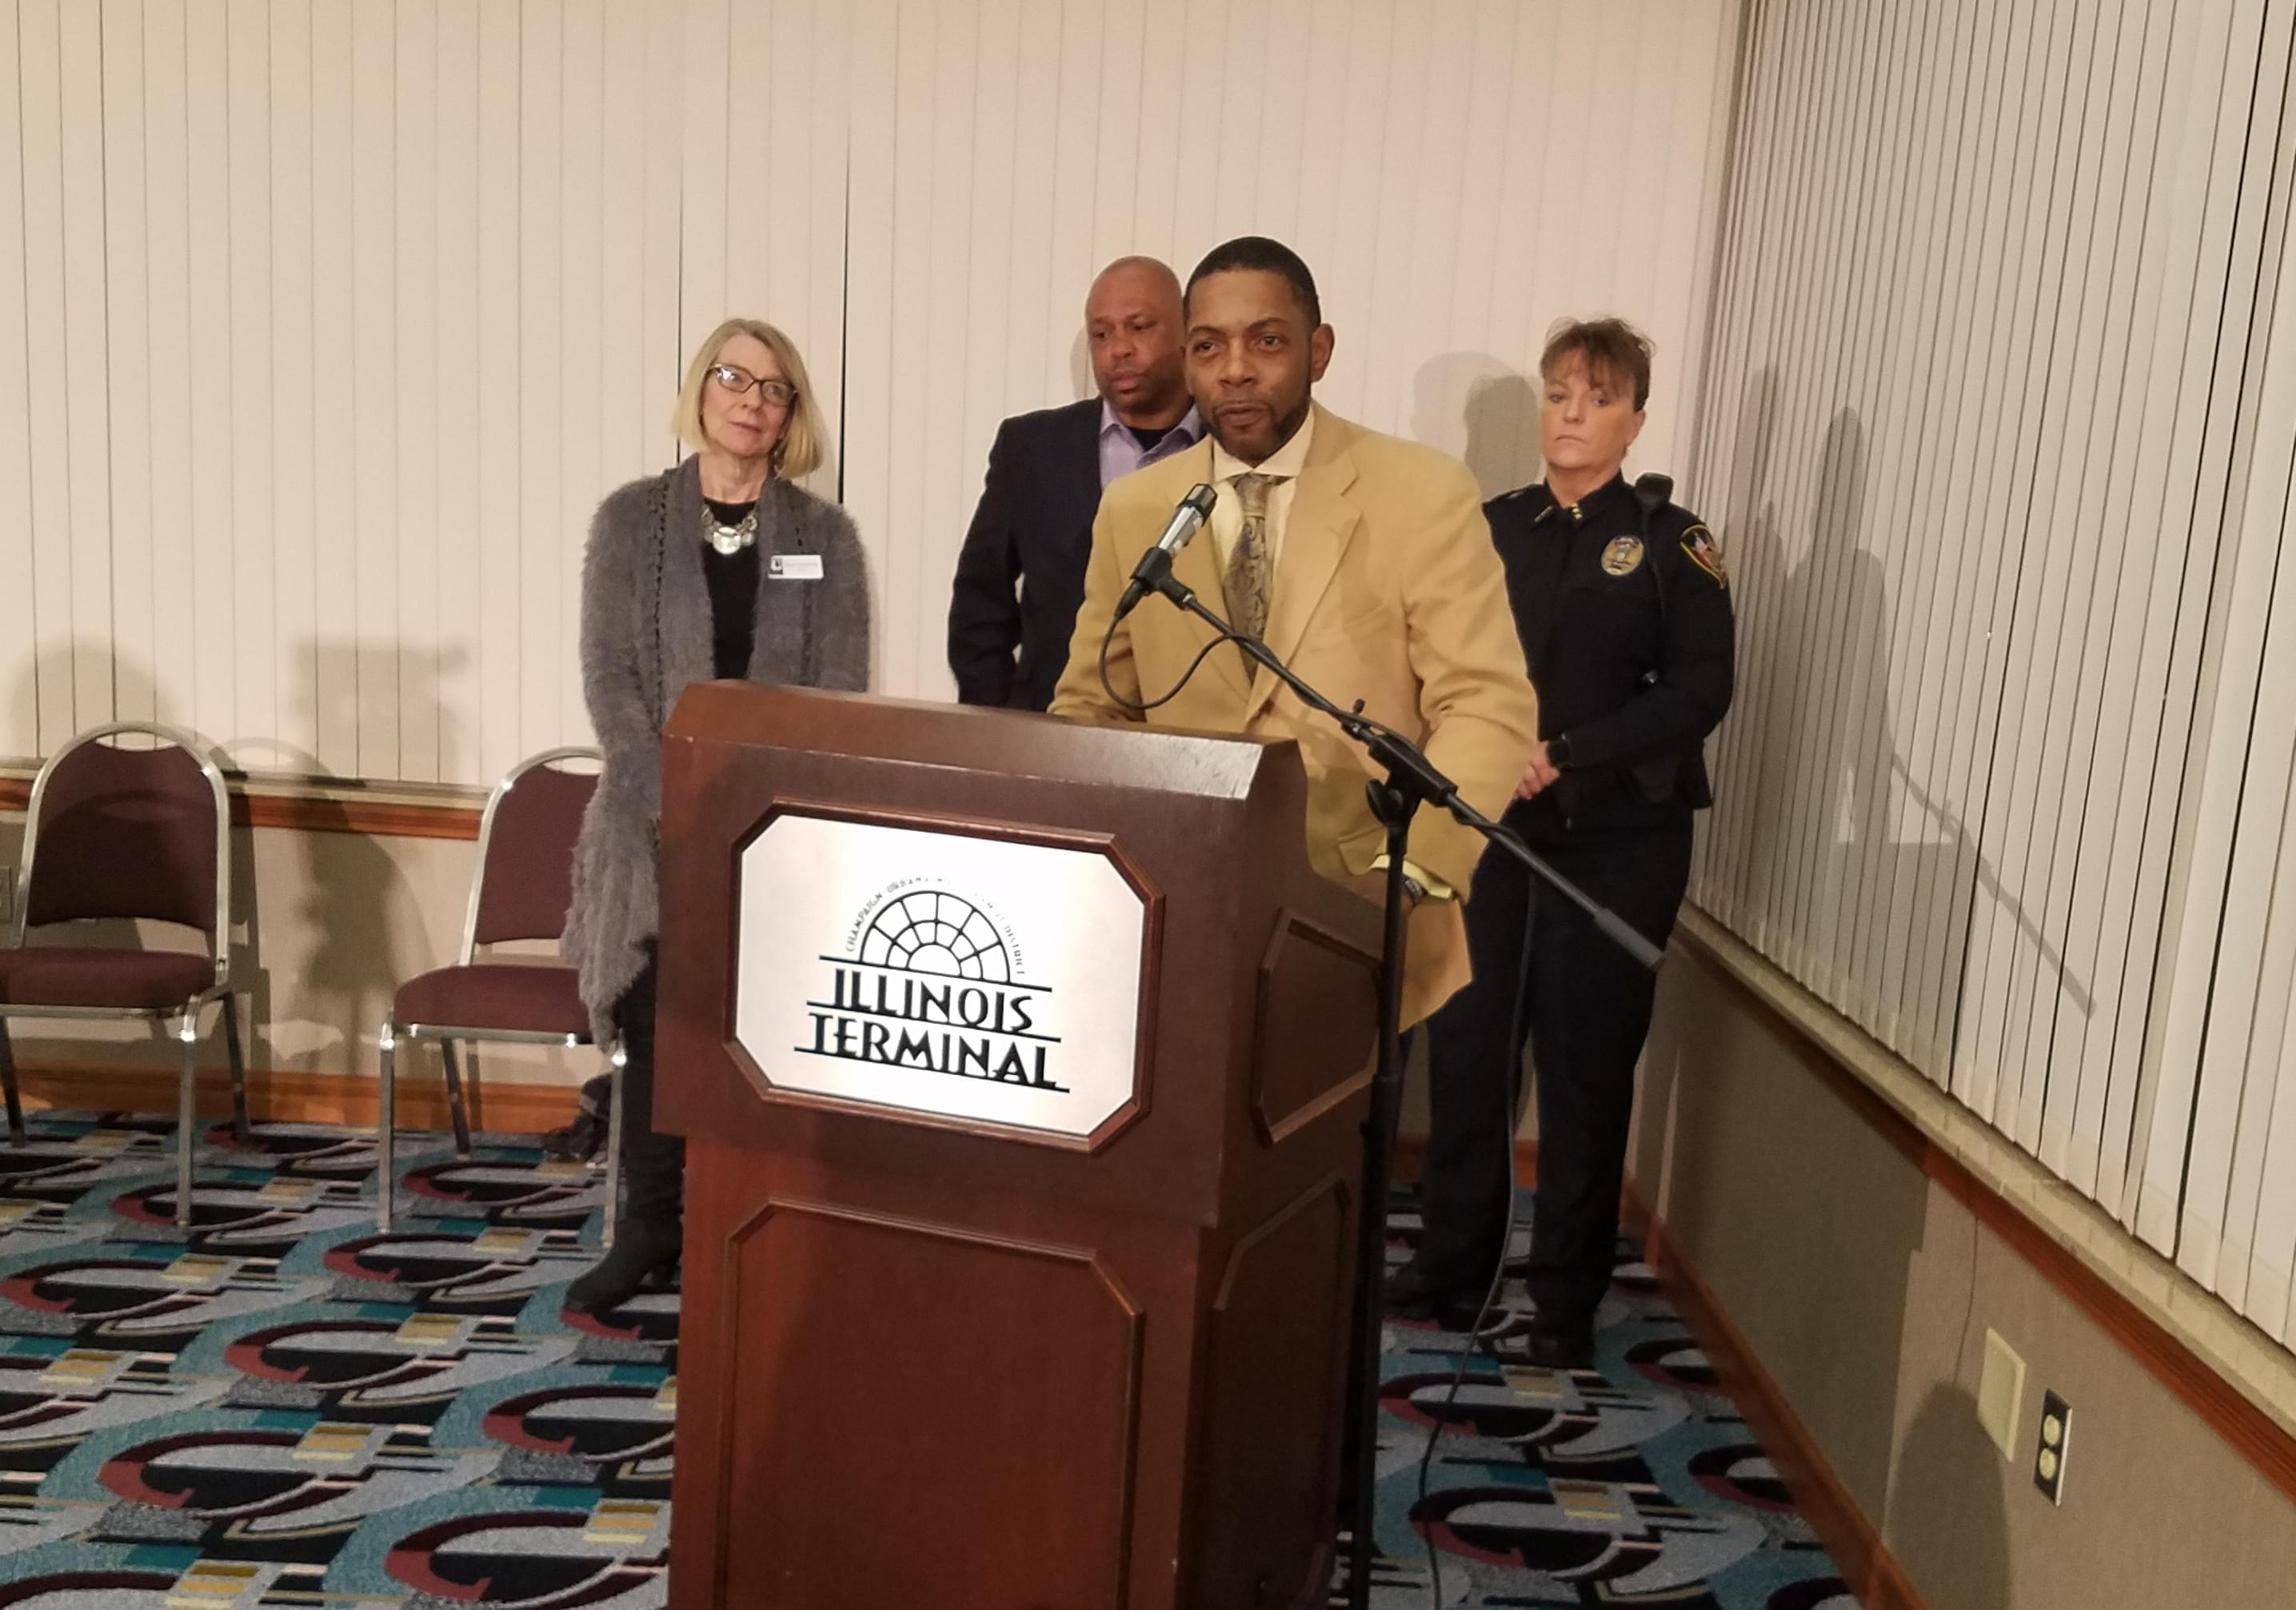 Champaign barber and funeral director Seon Williams, flanked by Urbana Mayor Diane Marlin, Tracy Parsons with the city of Champaign, and Urbana Police Chief Sylvia Morgan.